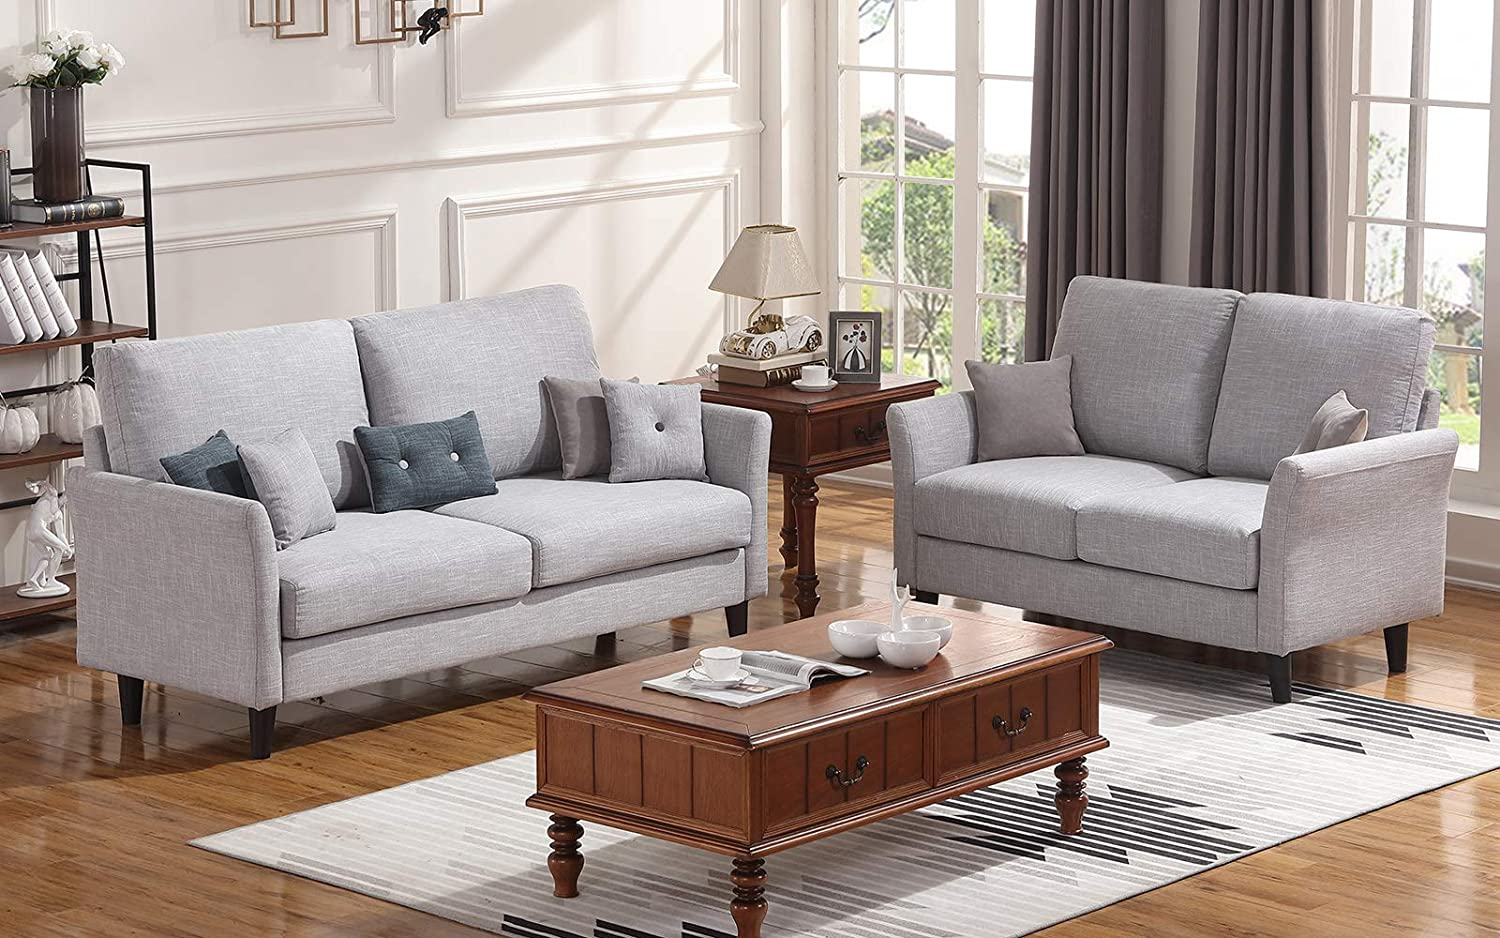 Amazon.com: Honbay Loveseat and Sofa Set for Living Room ...